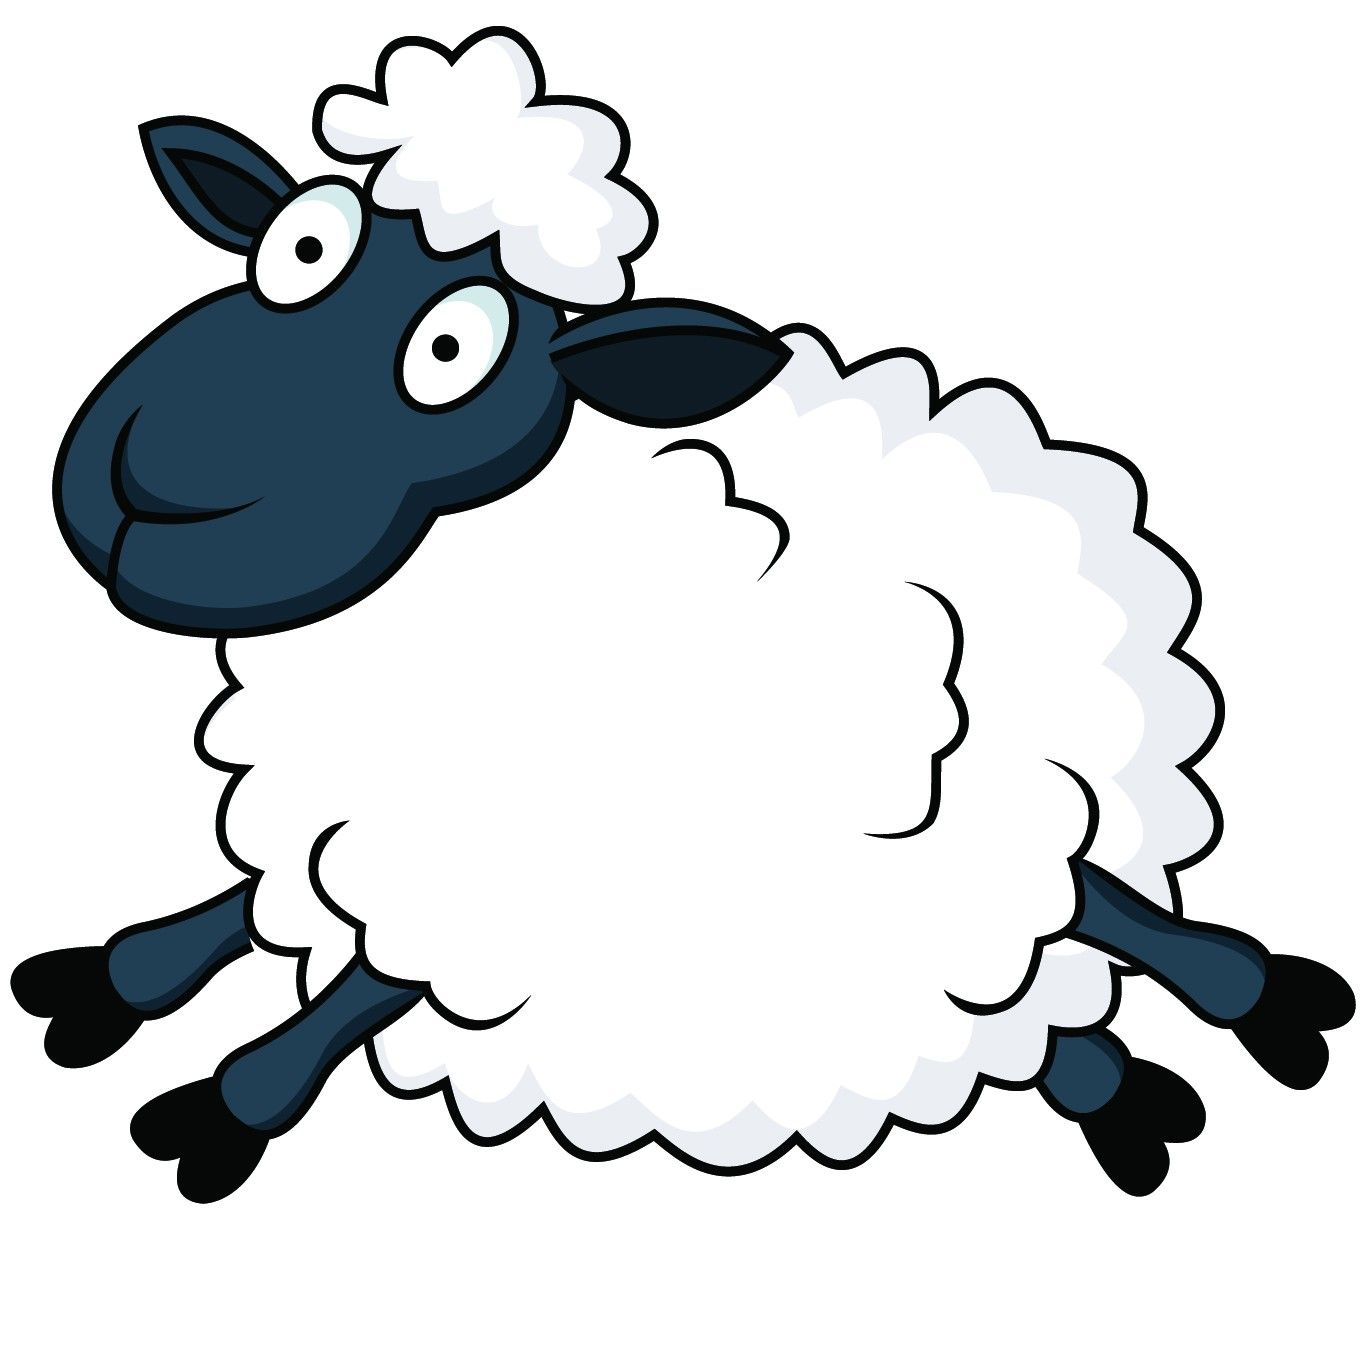 Funny sheep clipart banner black and white library Cartoon Counting Sheep | Displaying 19> Images For - Sheep Cartoon ... banner black and white library